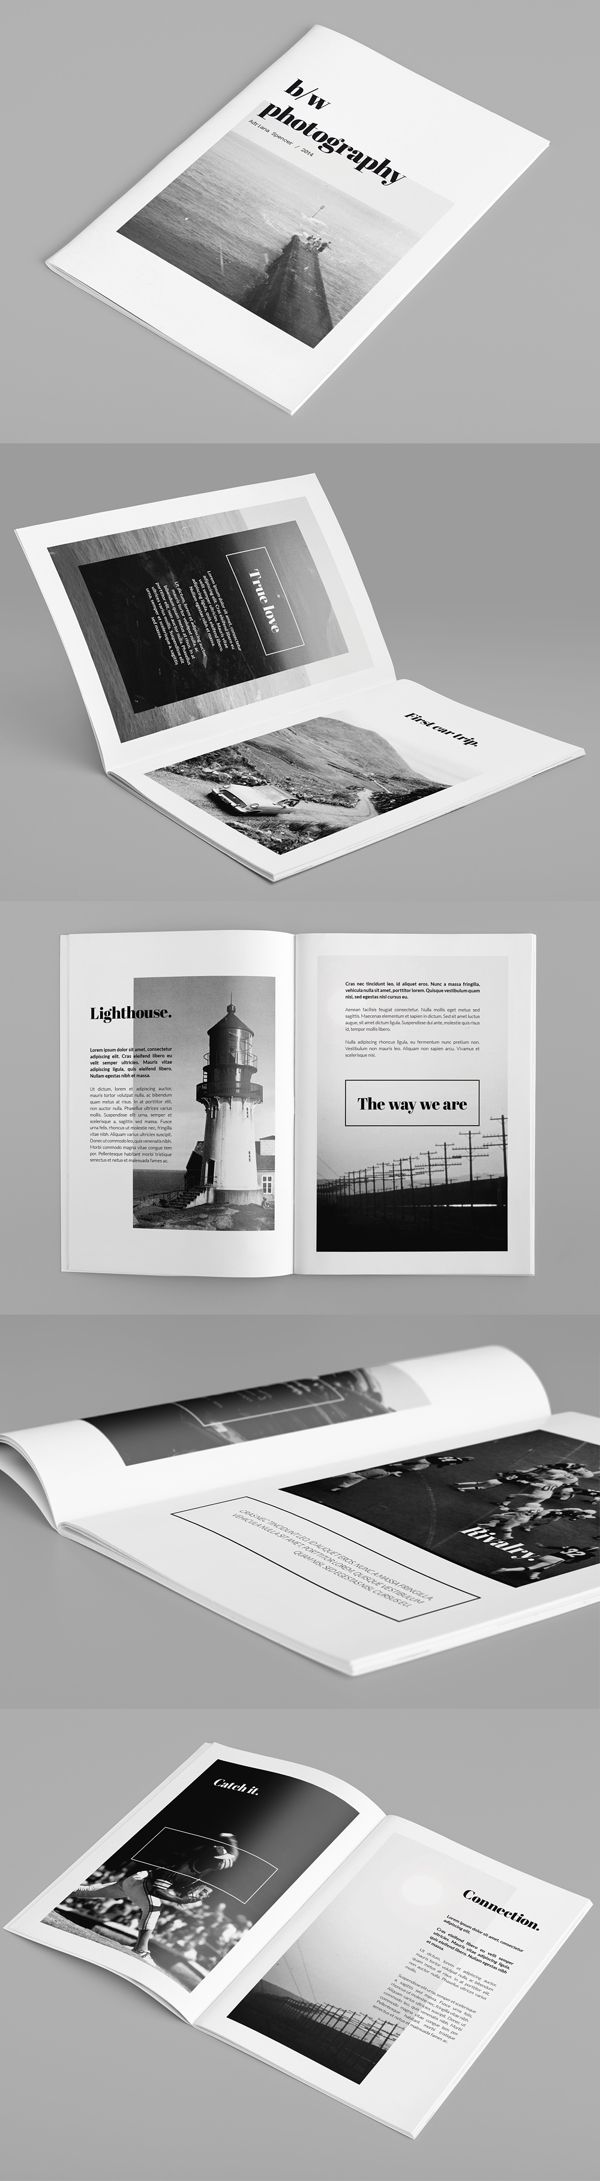 Minimal Photography Portfolio Brochure by Rounded Hexagon